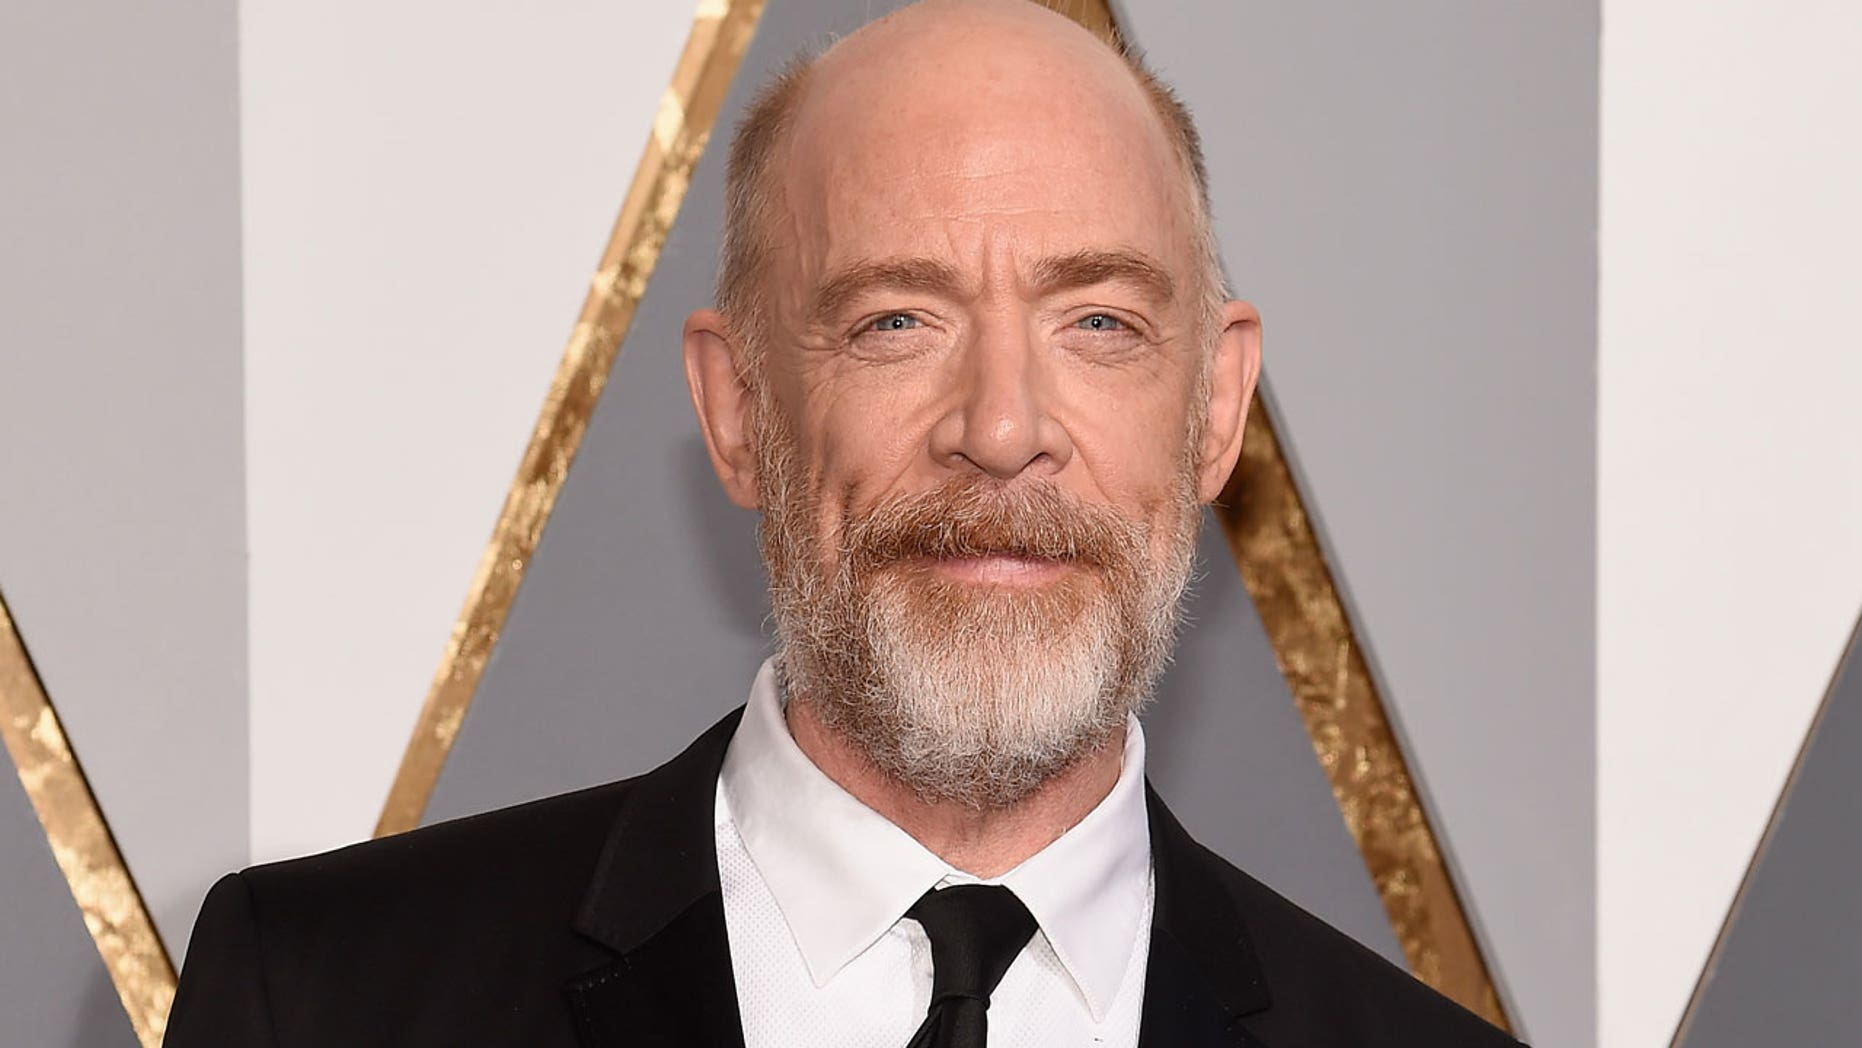 HOLLYWOOD, CA - FEBRUARY 28:  Actor J. K. Simmons attends the 88th Annual Academy Awards at Hollywood & Highland Center on February 28, 2016 in Hollywood, California.  (Photo by Kevork Djansezian/Getty Images)